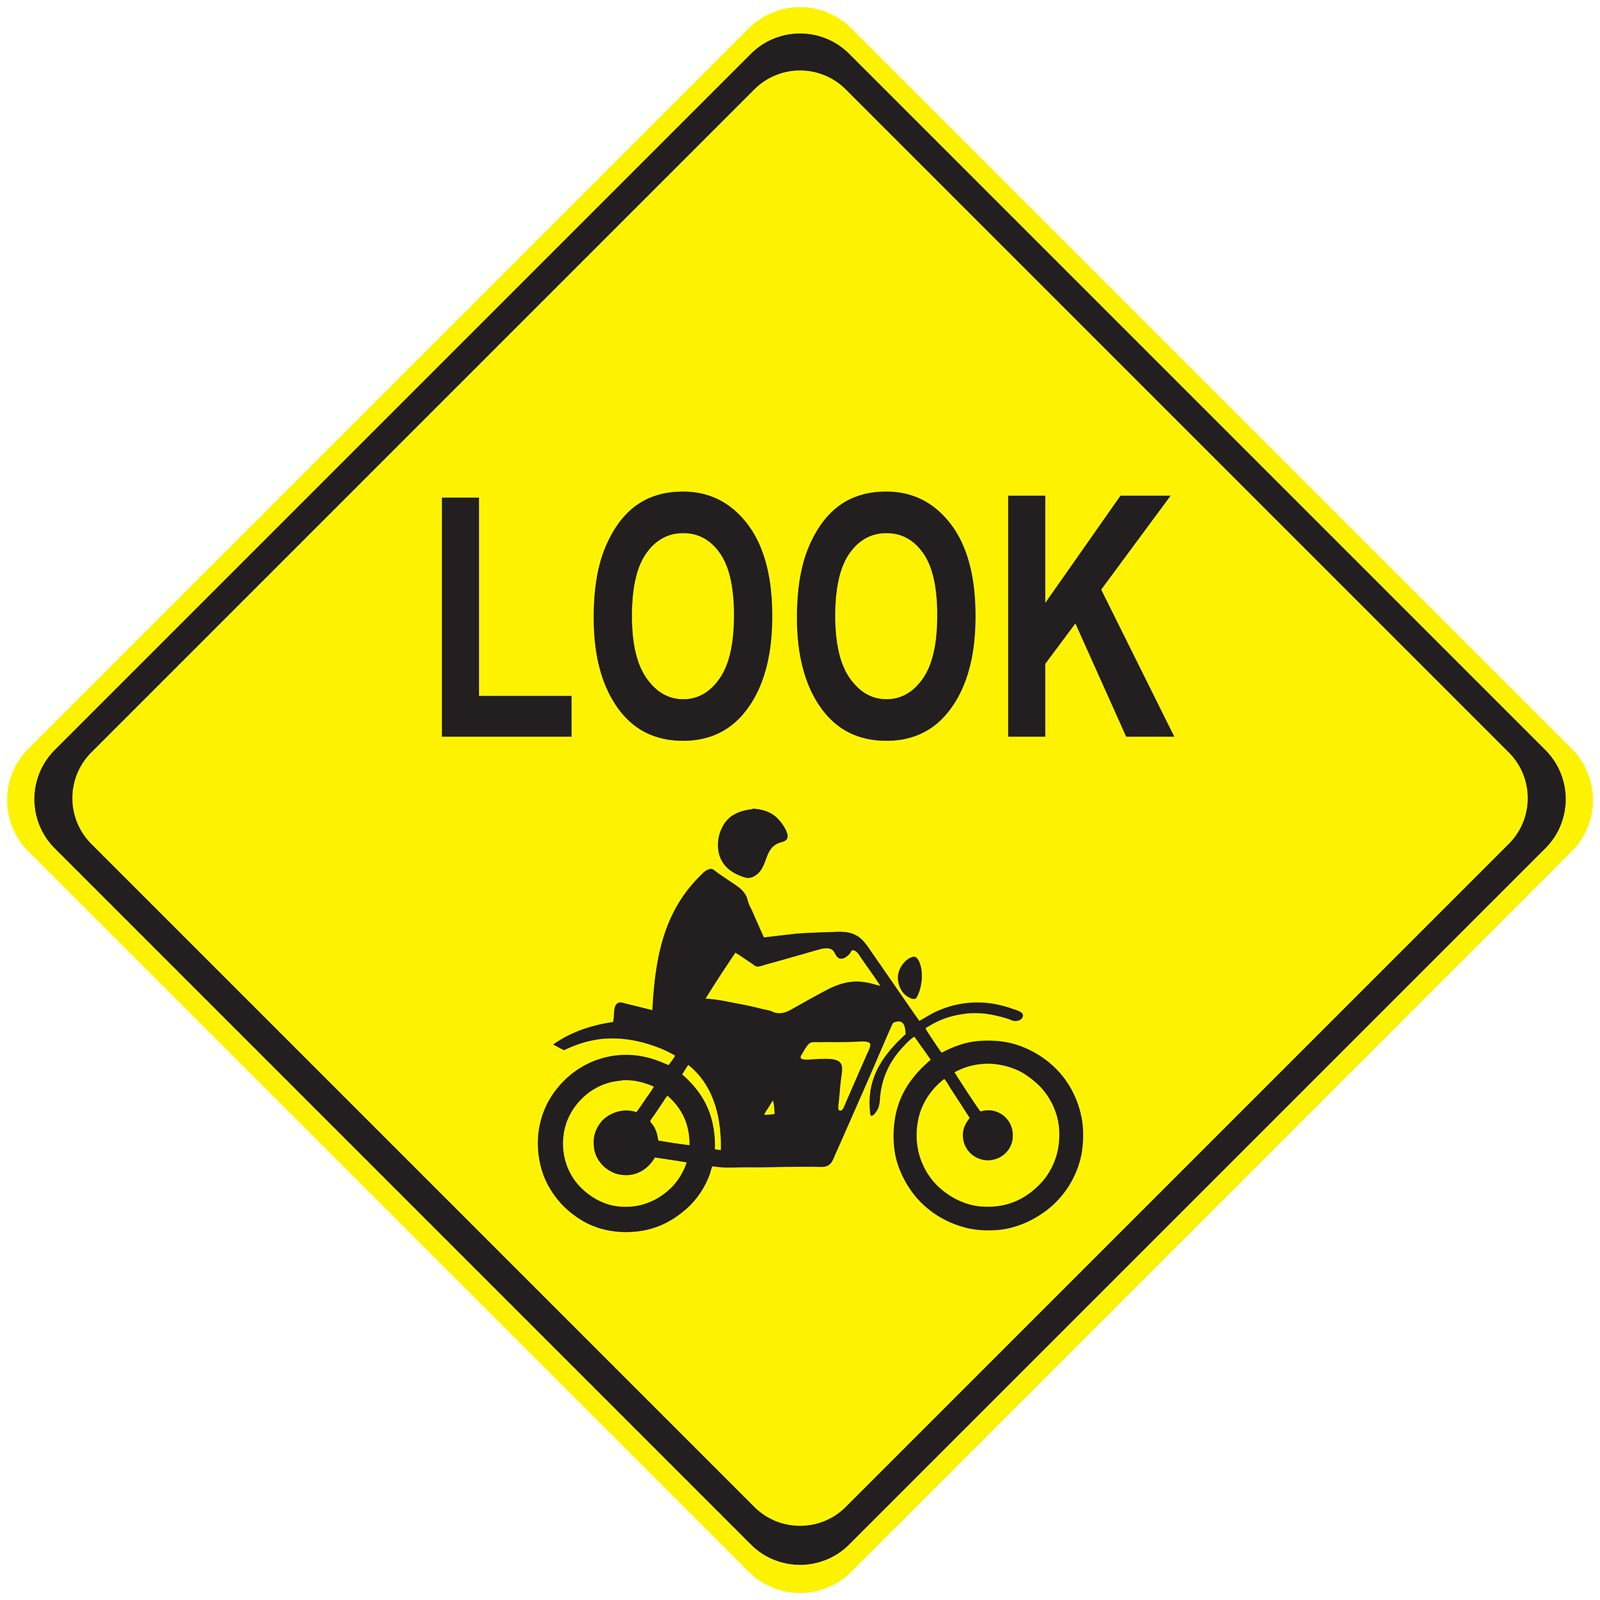 NY motorcycle insurance is critial, but so is general safety!